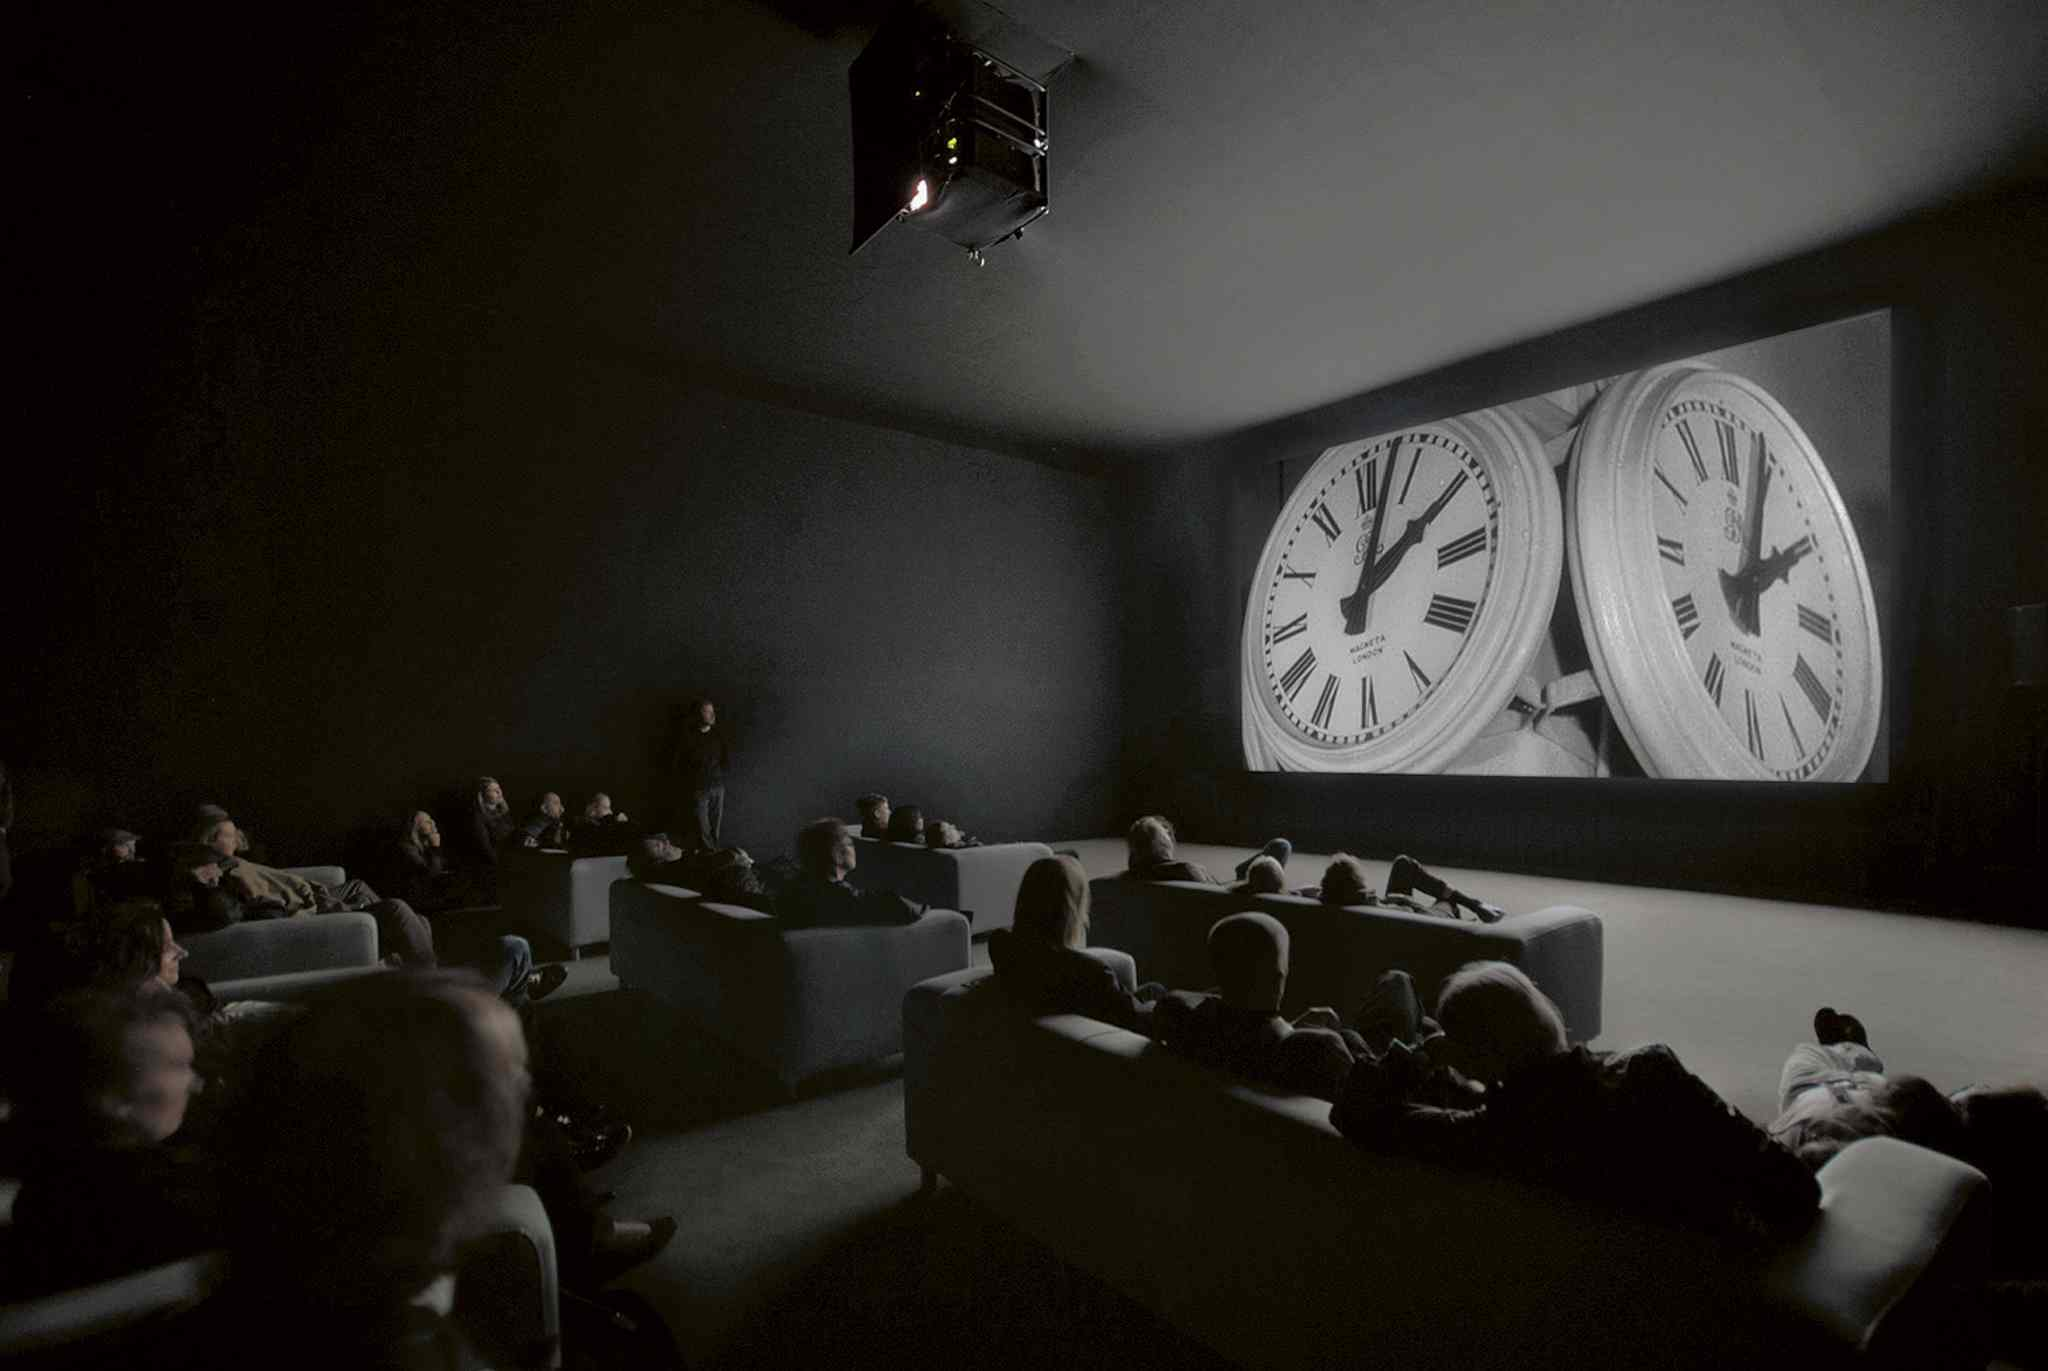 The Clock, by Swiss artist and composer Christian Marclay, is a 24-hour montage of film, linked together by the aspect of time. It opens Oct. 11 at the Winnipeg Art Gallery.